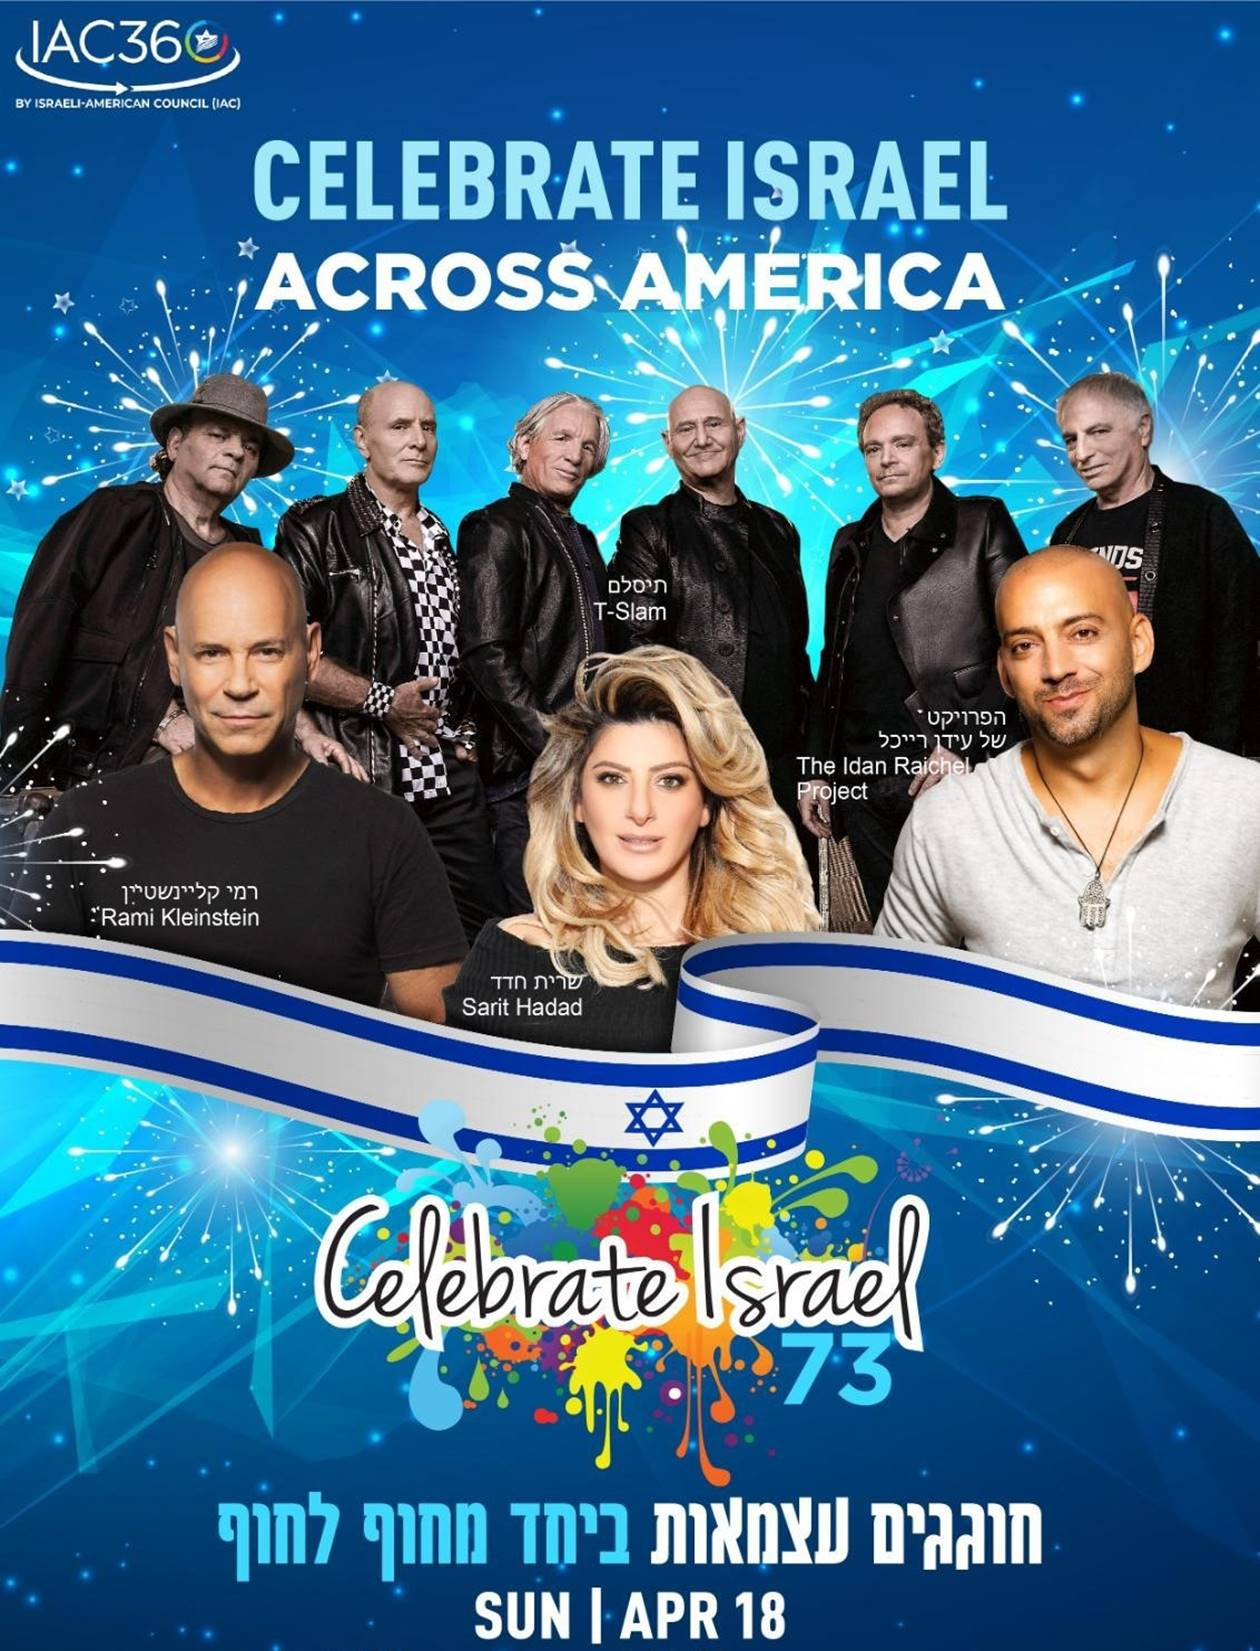 Celebrate Israel's 73rd Birthday Sunday April 18th